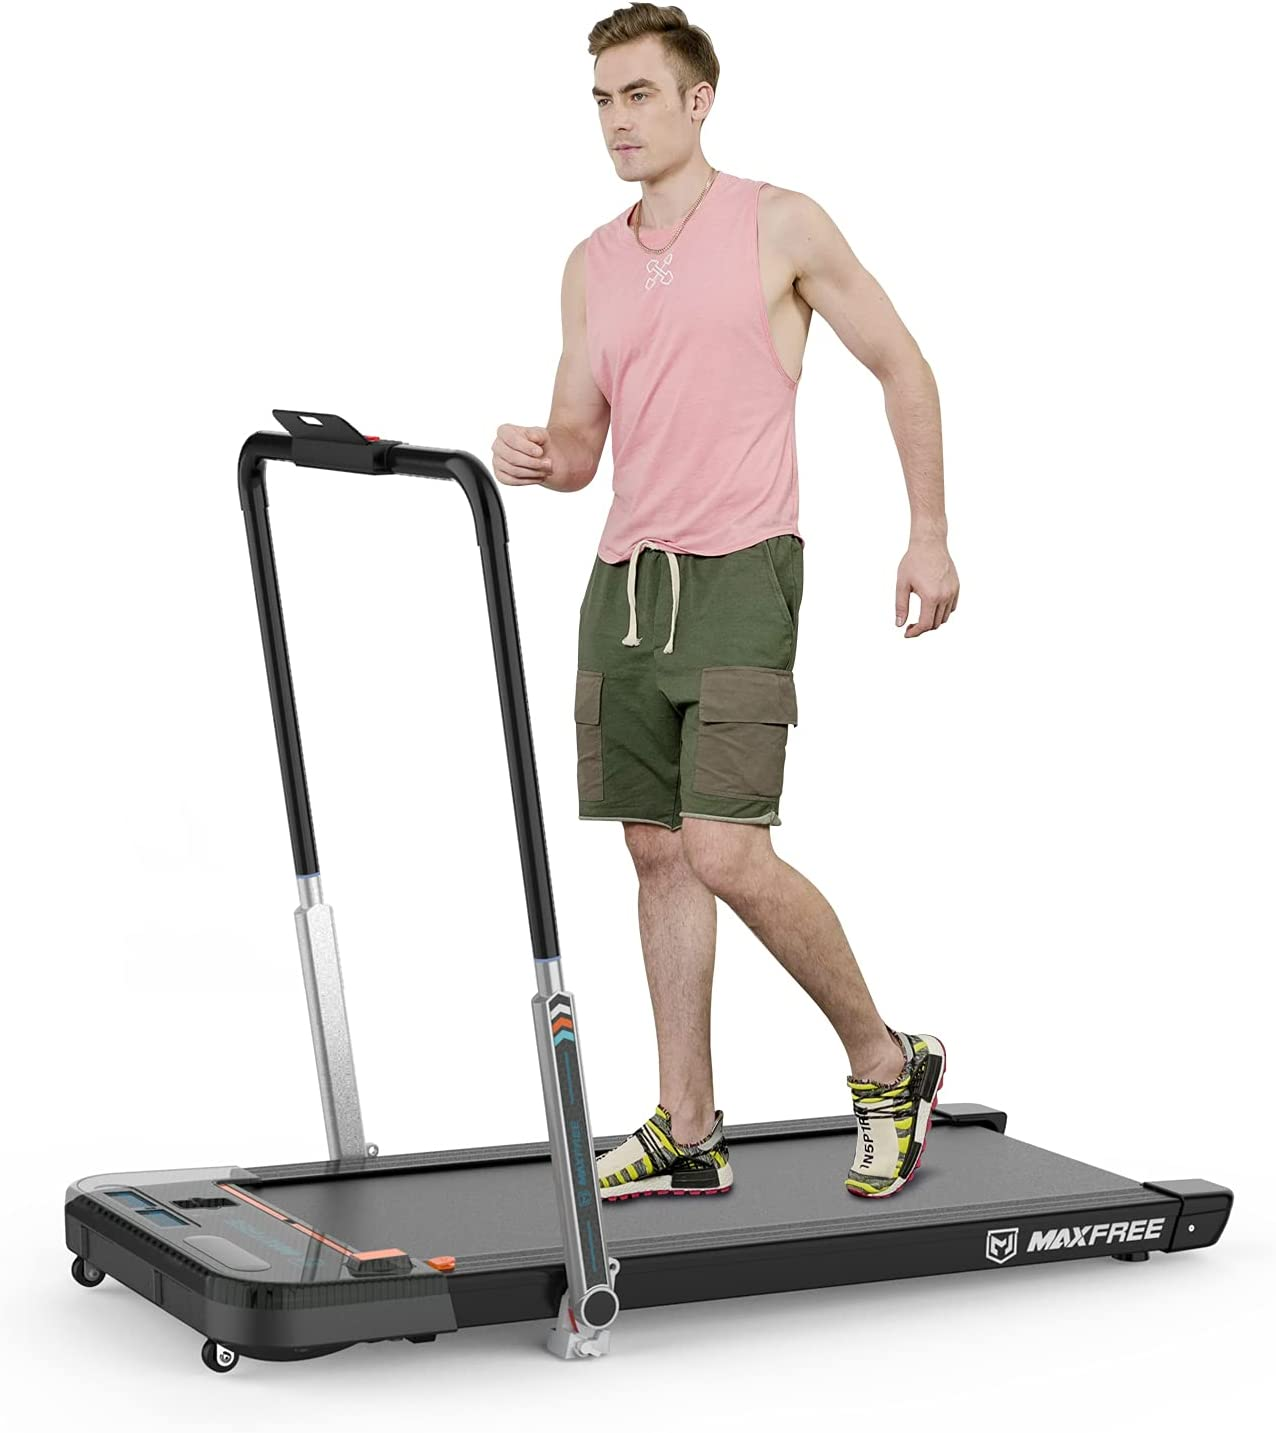 MAXFREE Folding Treadmill 2 in Under Desk Same day shipping Portable 1 2021new shipping free shipping